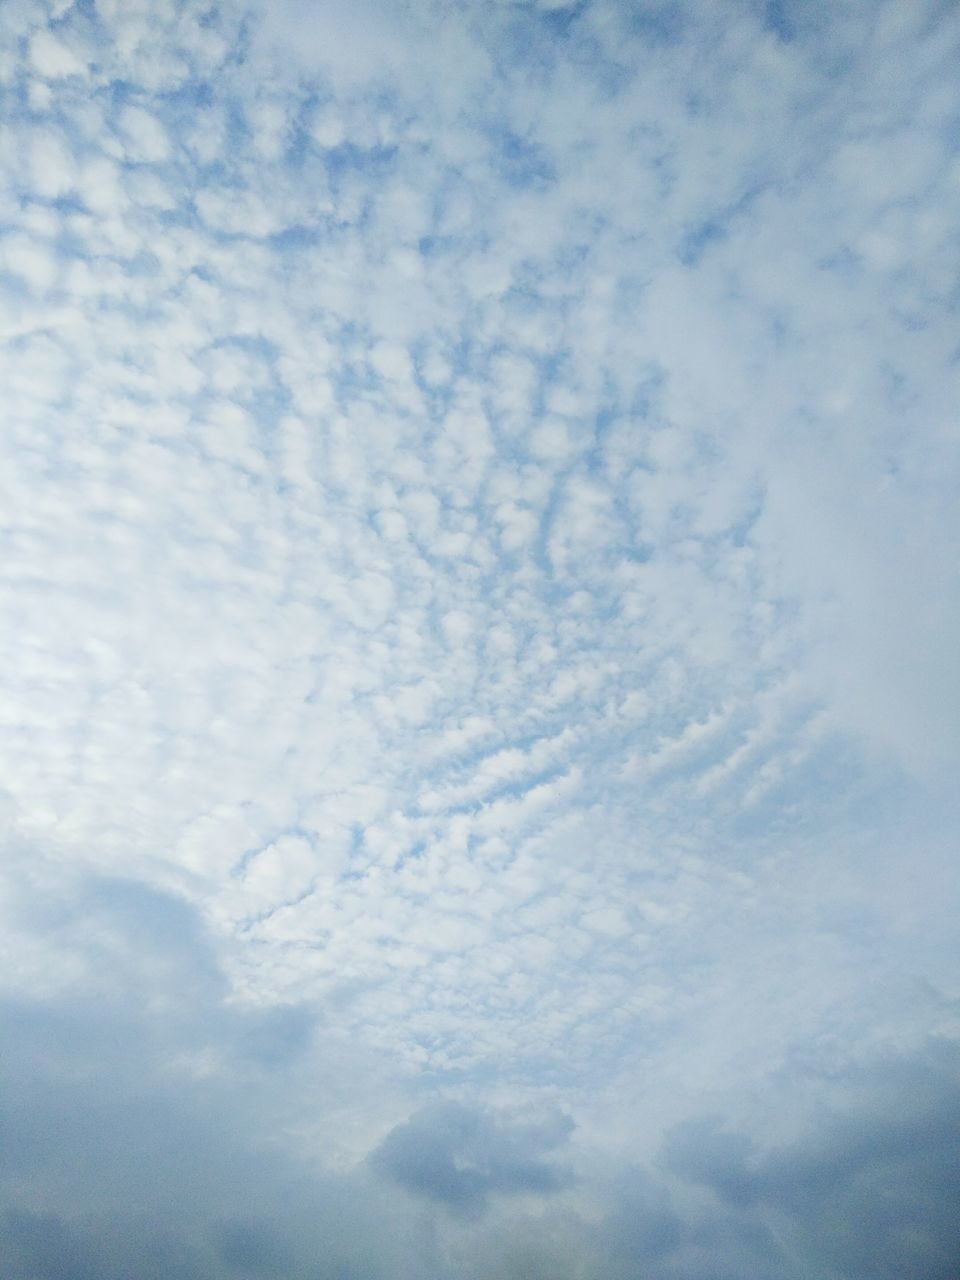 cloud - sky, sky, low angle view, nature, beauty in nature, tranquility, cloudscape, sky only, no people, scenics, backgrounds, tranquil scene, full frame, outdoors, day, blue